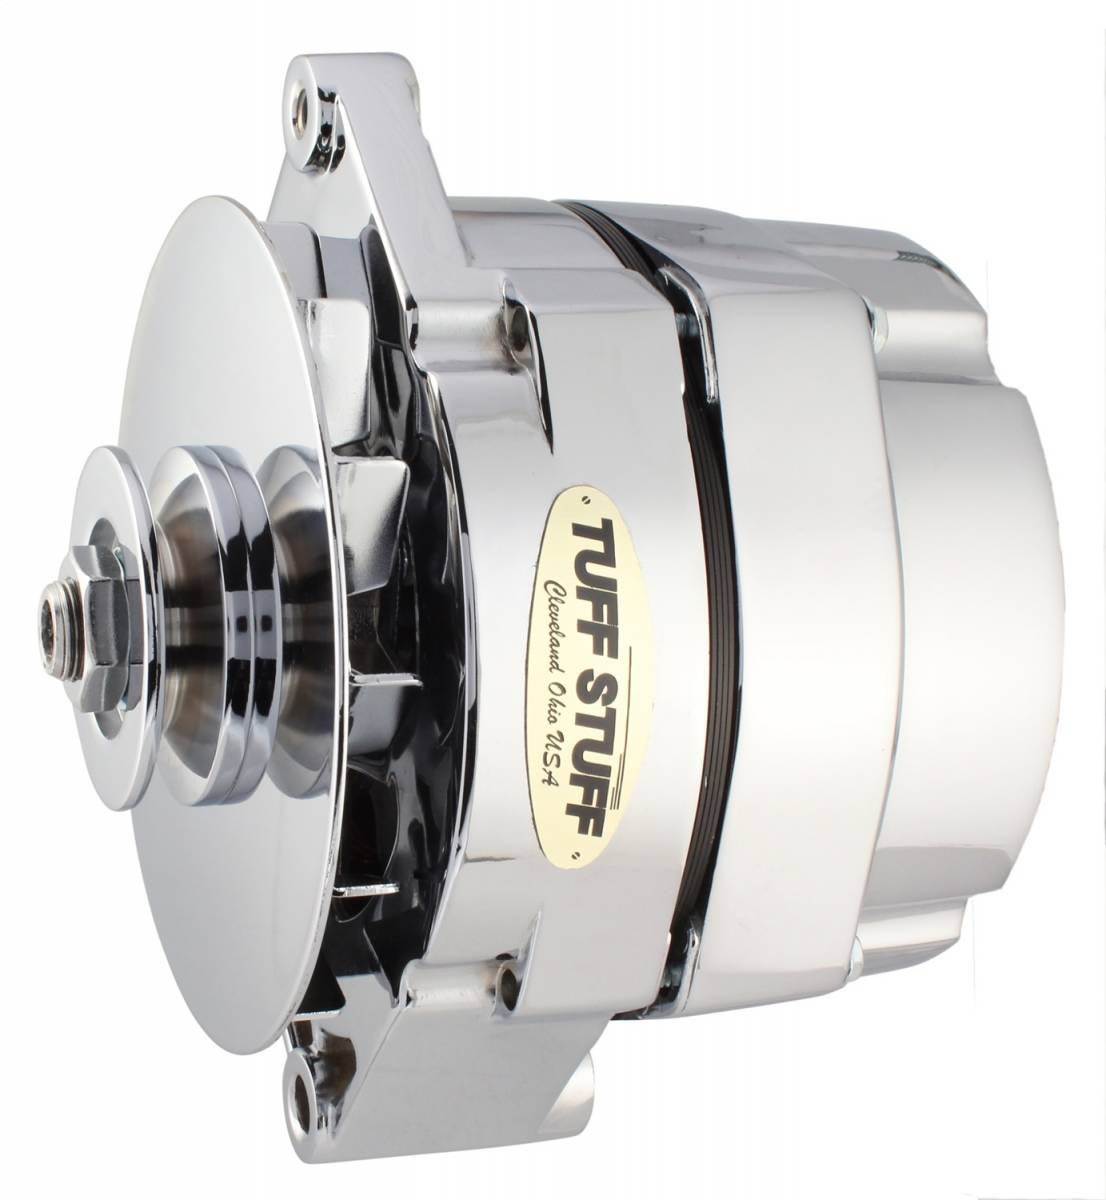 Tuff Stuff Performance - Alternator 80 AMP OEM Wire V Groove Pulley External Regulator Polished Must Be Used With An External Solid State Voltage Regulator 7102NAP